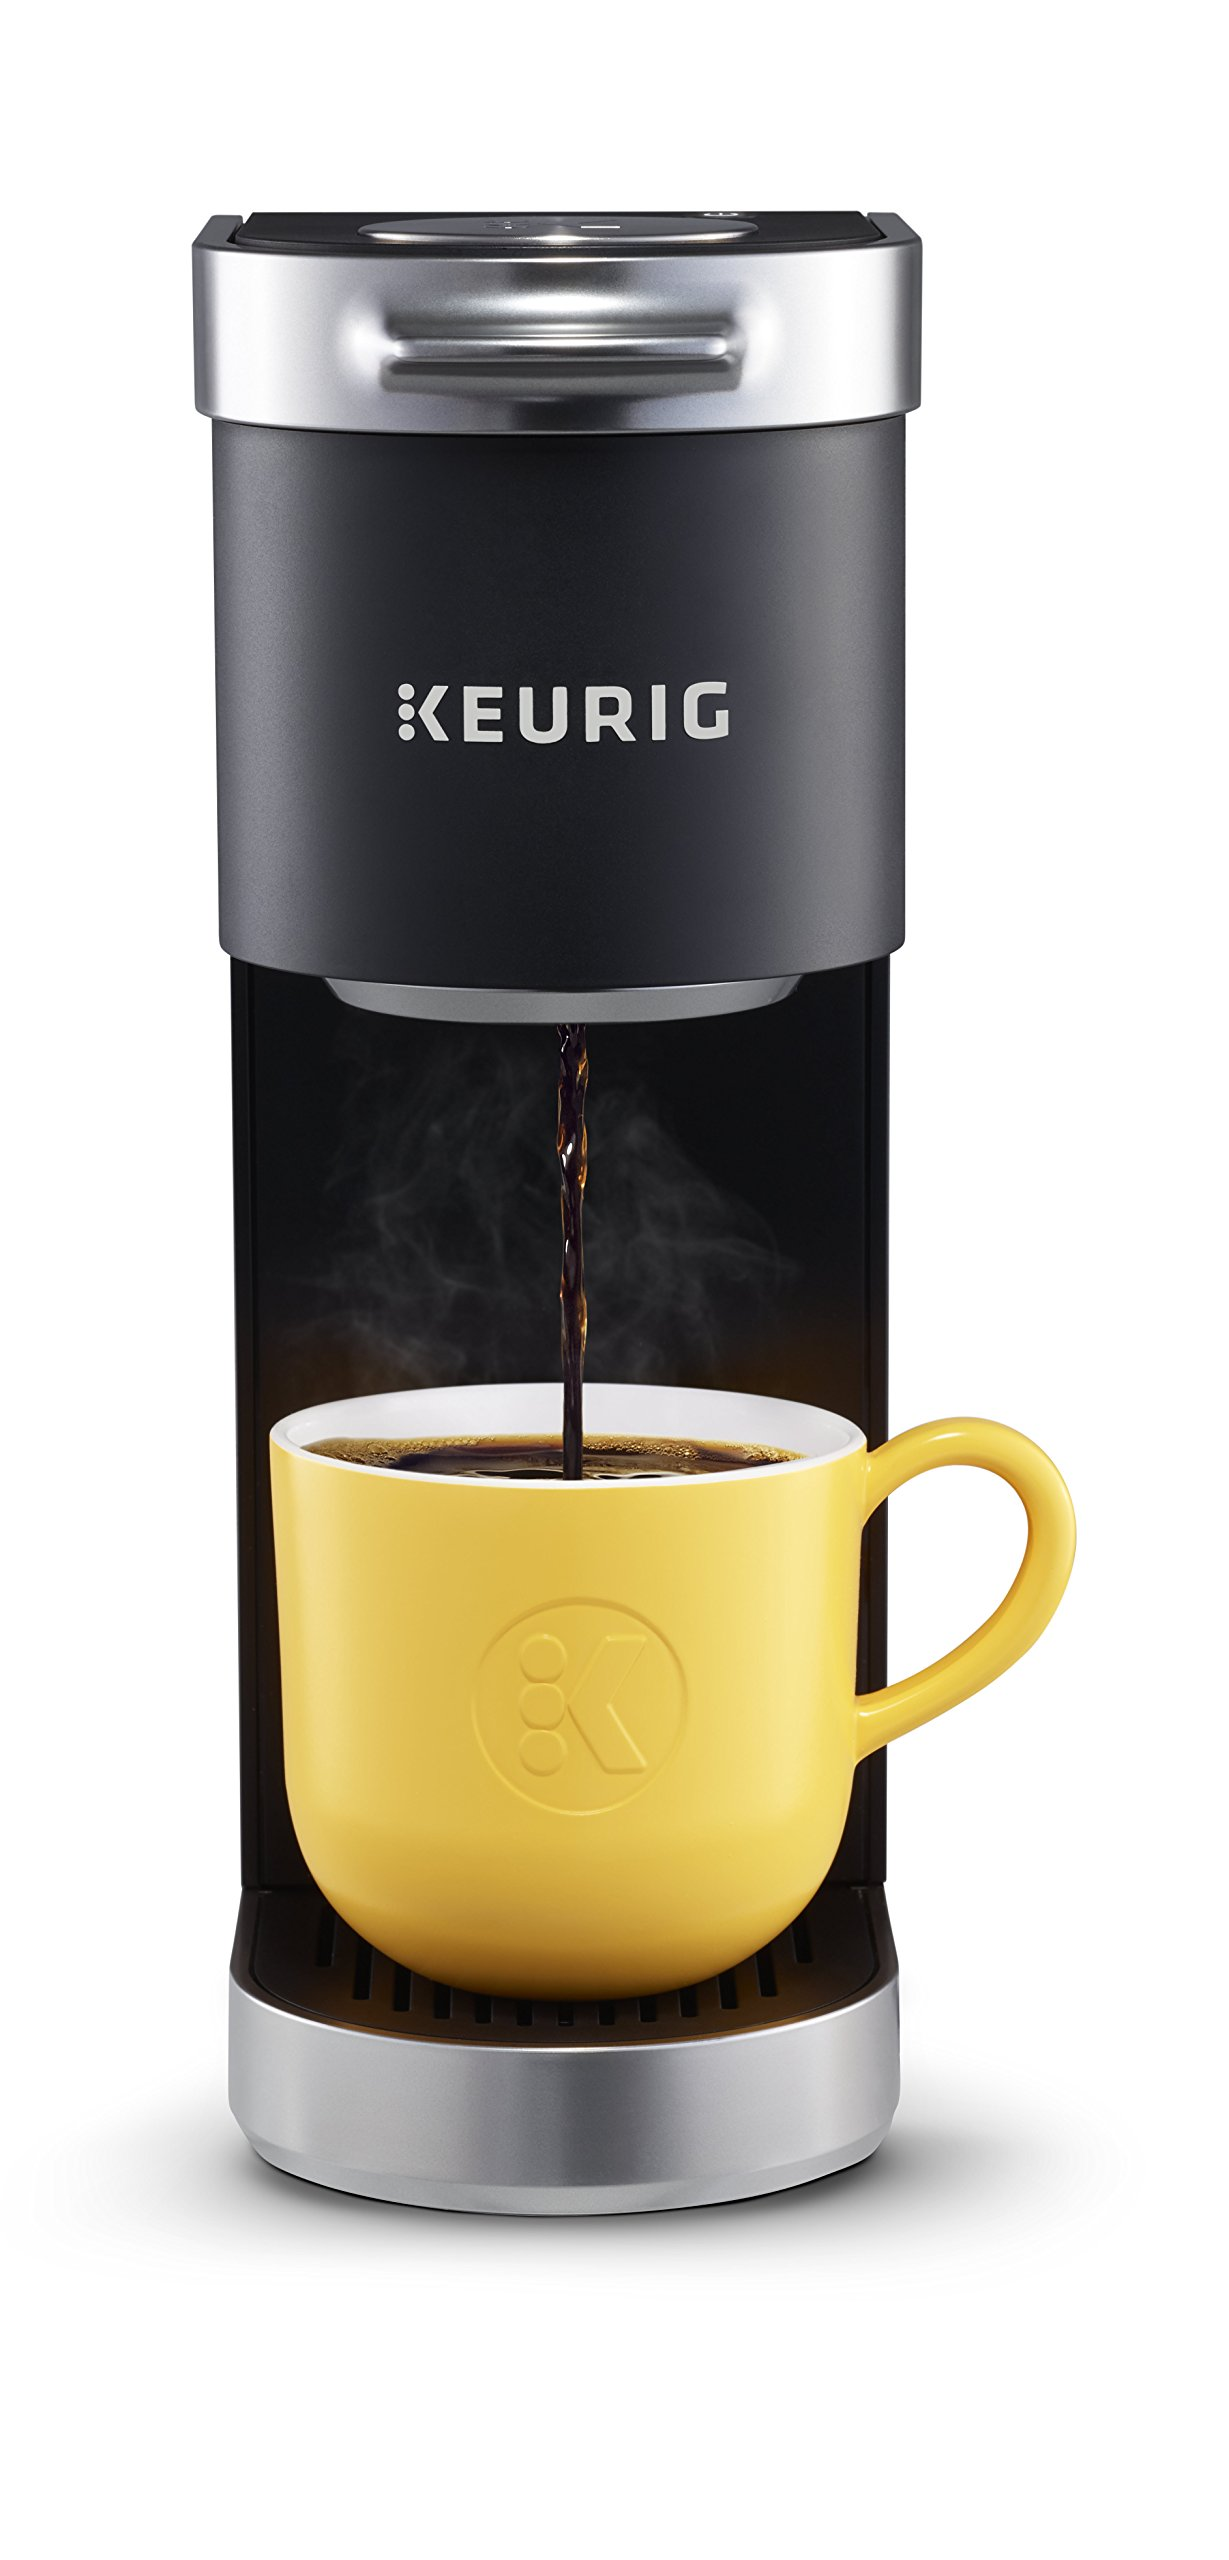 Keurig K-Mini Plus Coffee Maker, Single Serve K-Cup Pod Coffee Brewer, Comes With 6 to 12 oz. Brew Size, K-Cup Pod Storage, and Travel Mug Friendly, Black by Keurig